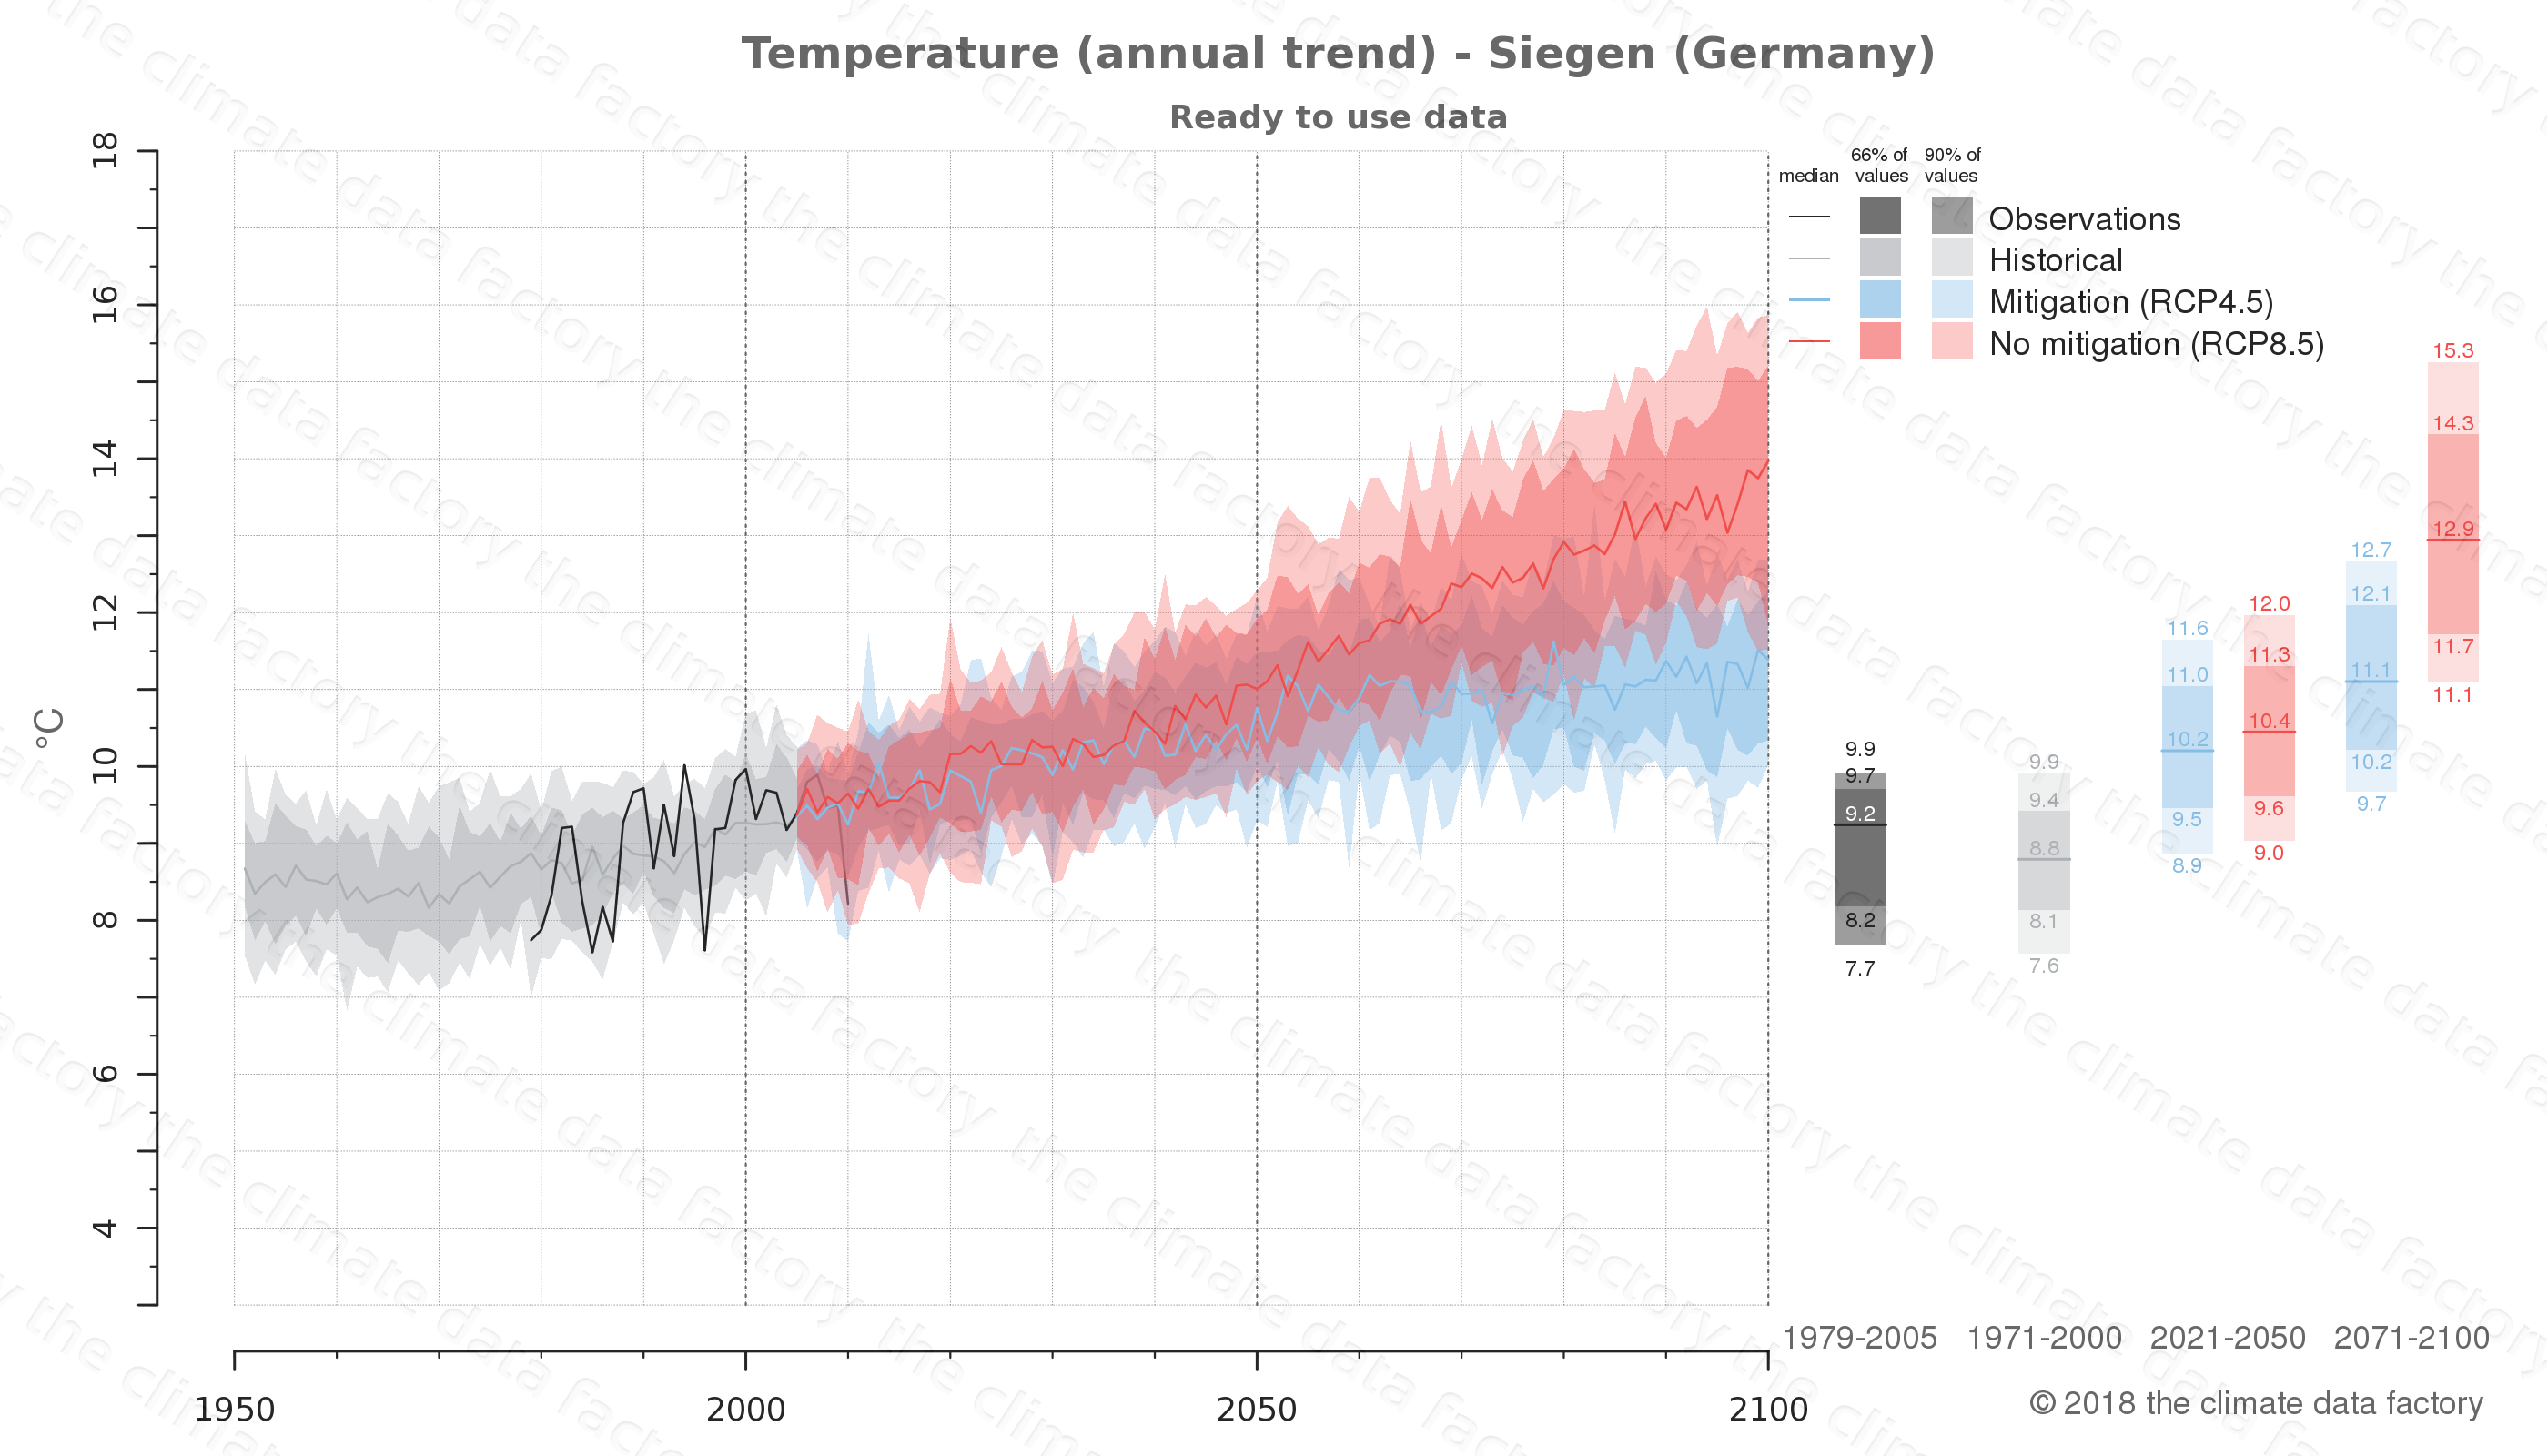 climate change data policy adaptation climate graph city data temperature siegen germany